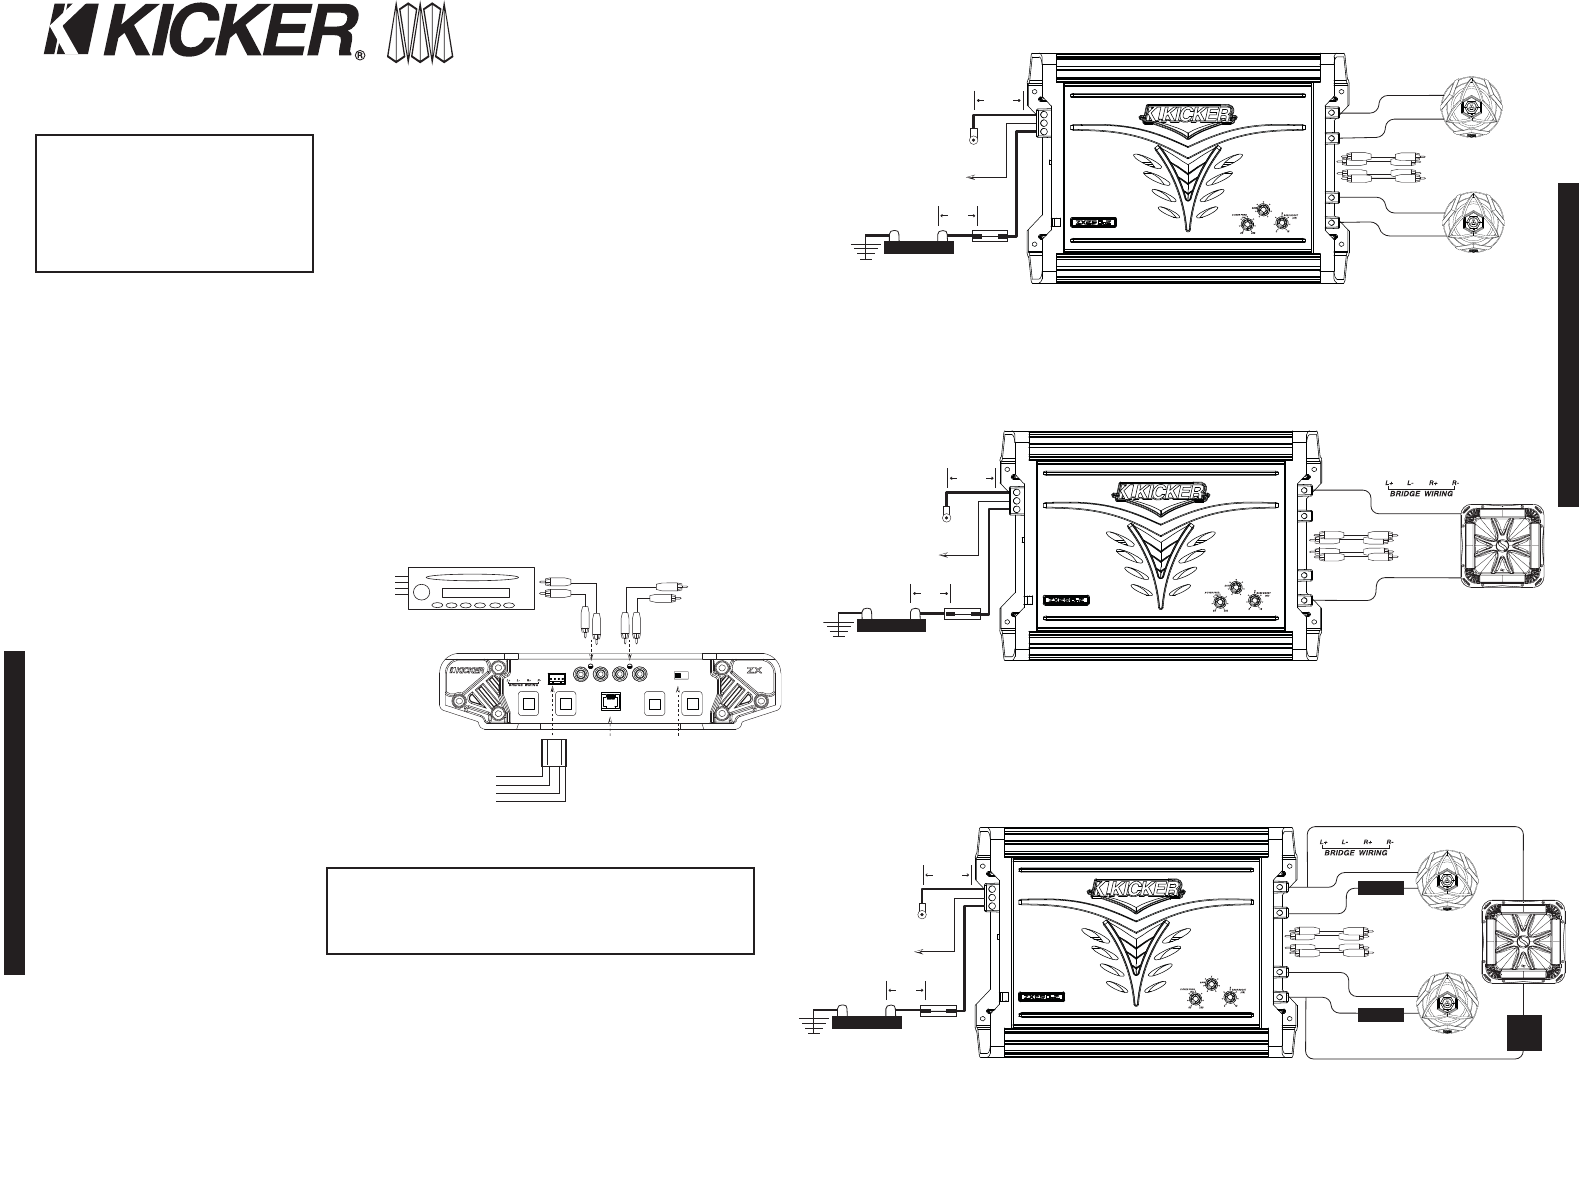 kicker amp wiring diagram   25 wiring diagram images